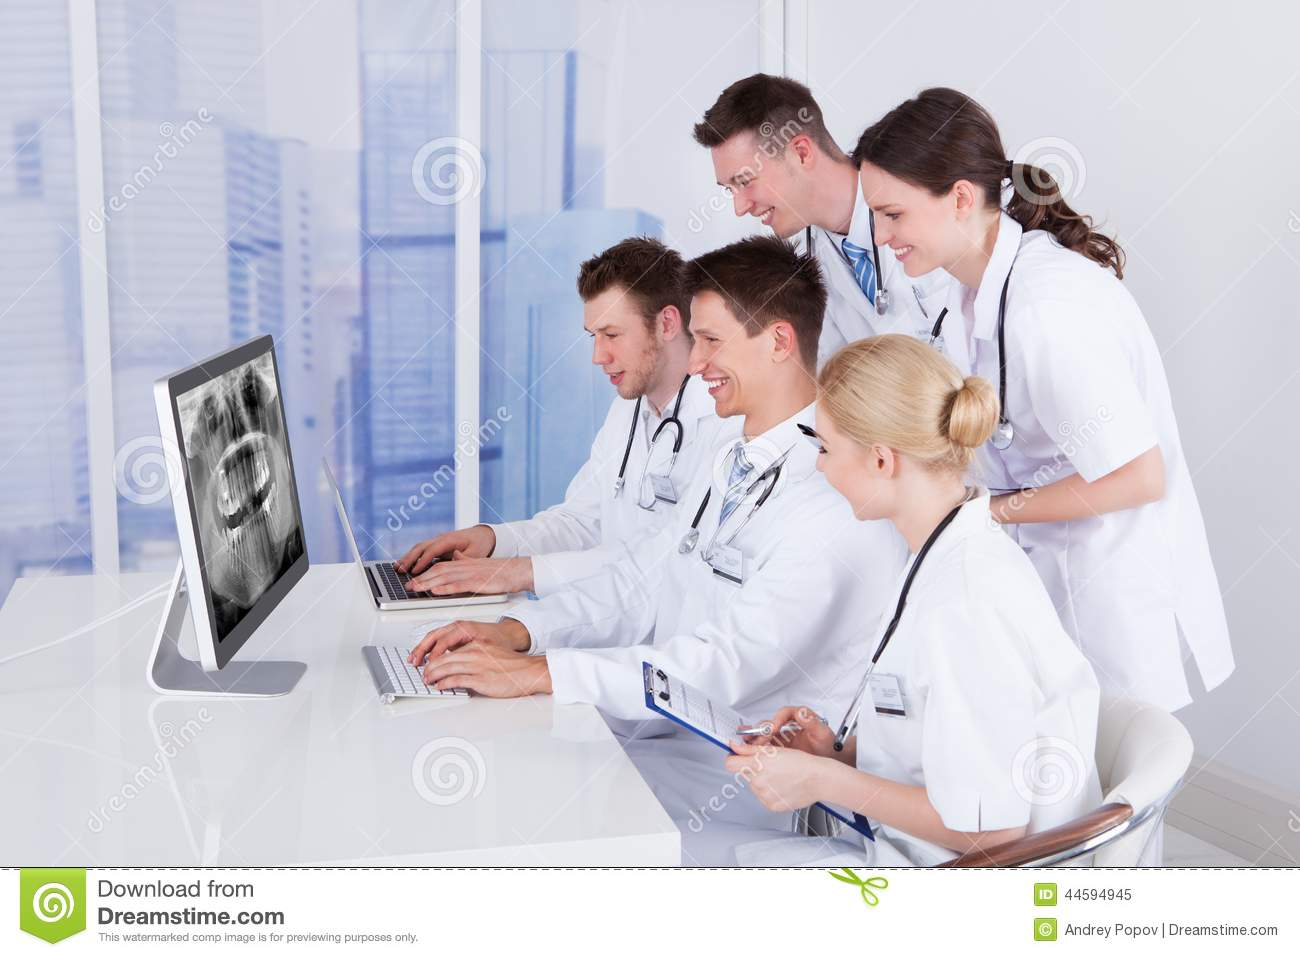 Dentists examining jaw xray on computer